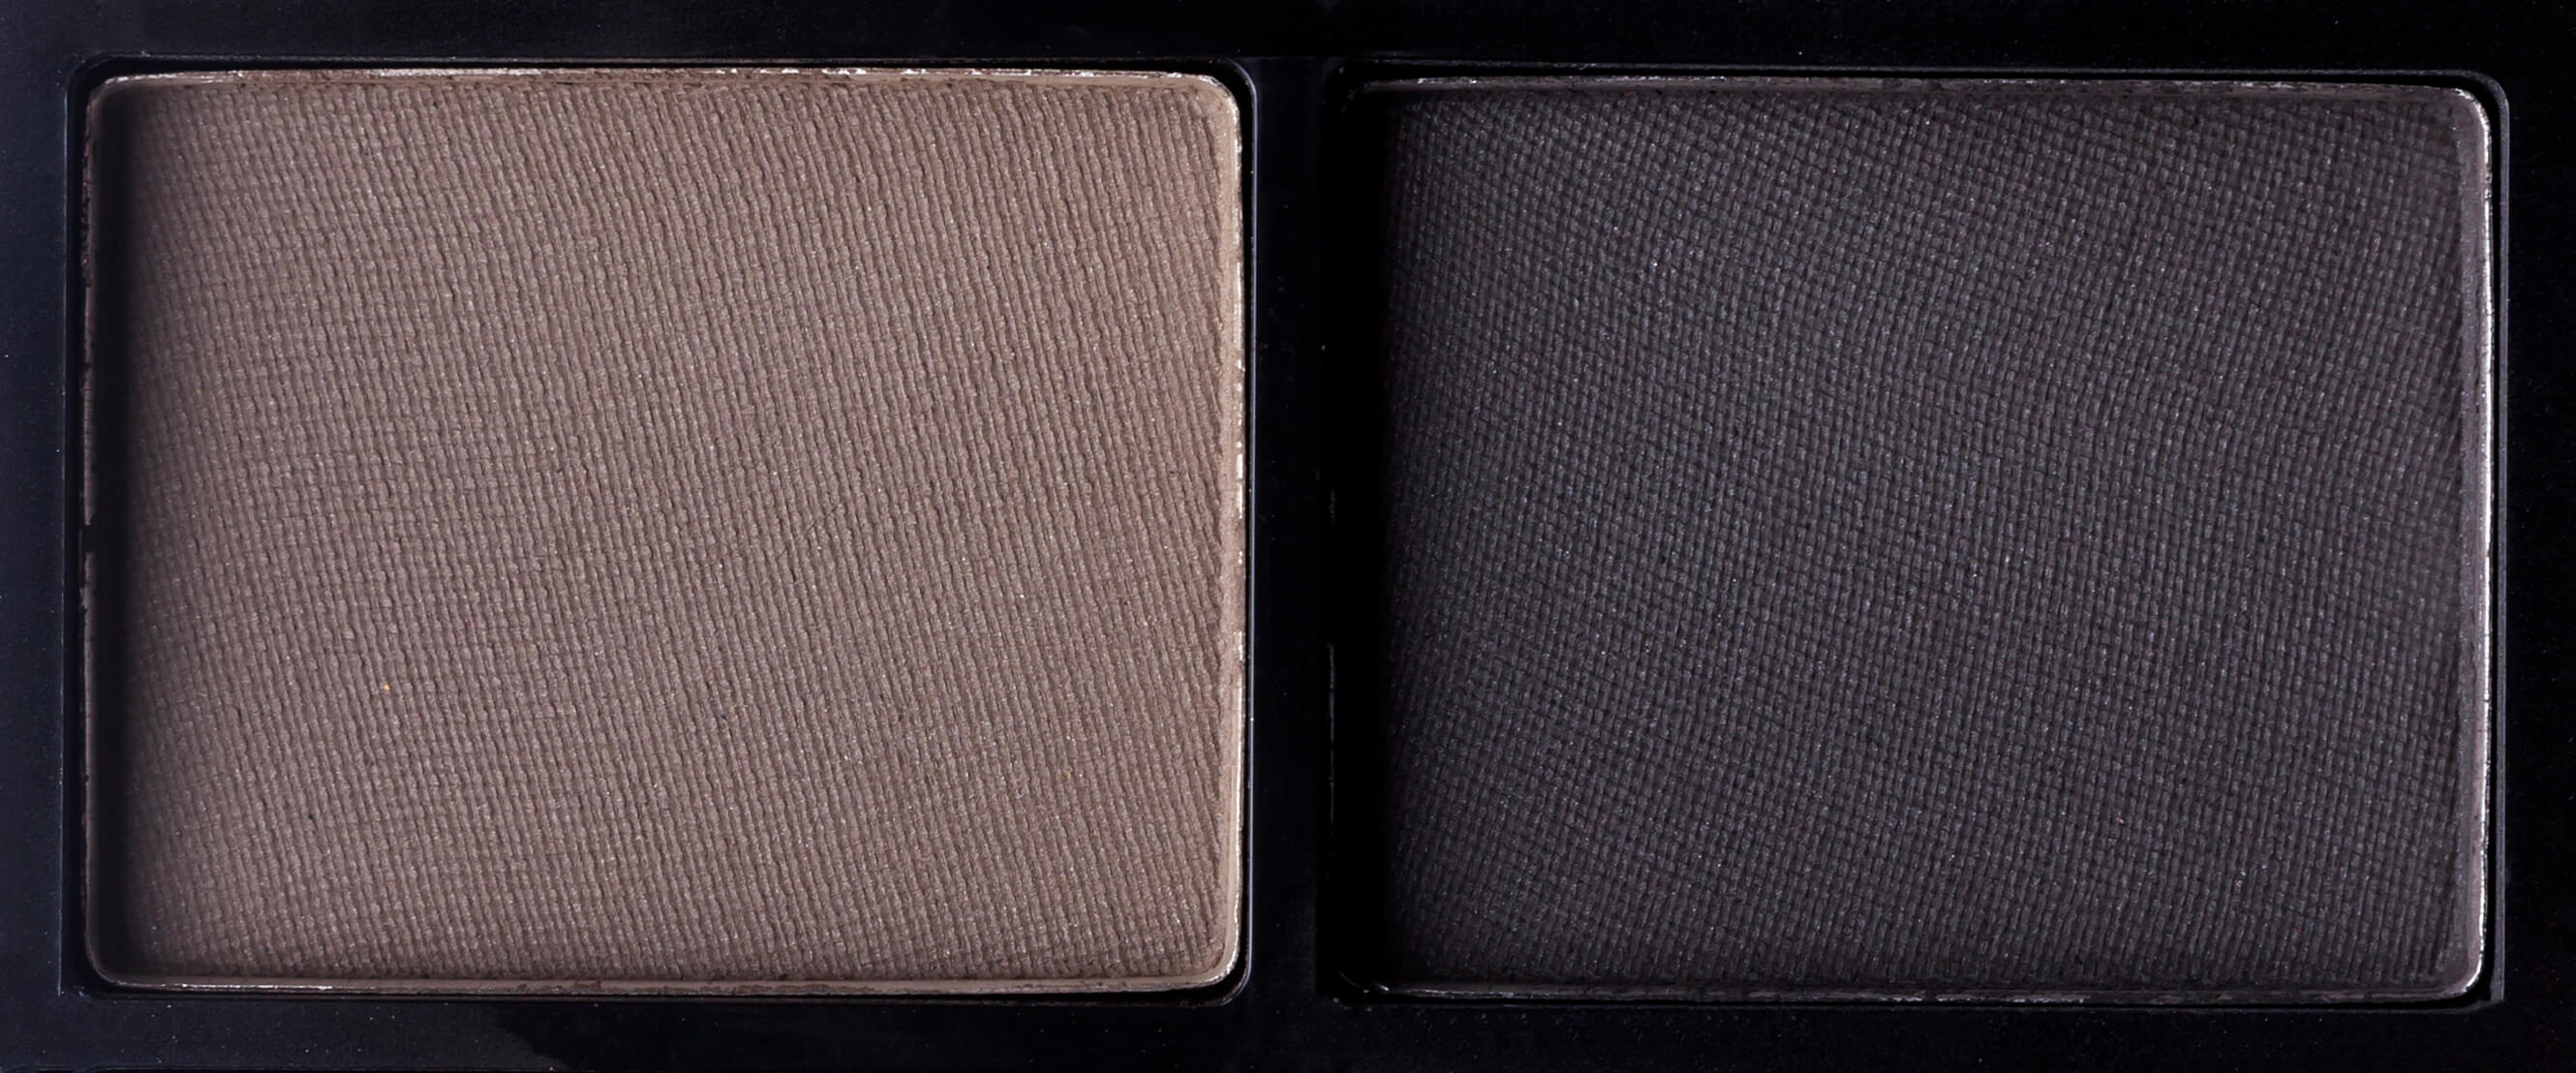 Sombra para cejas Dark Duo Shadow.